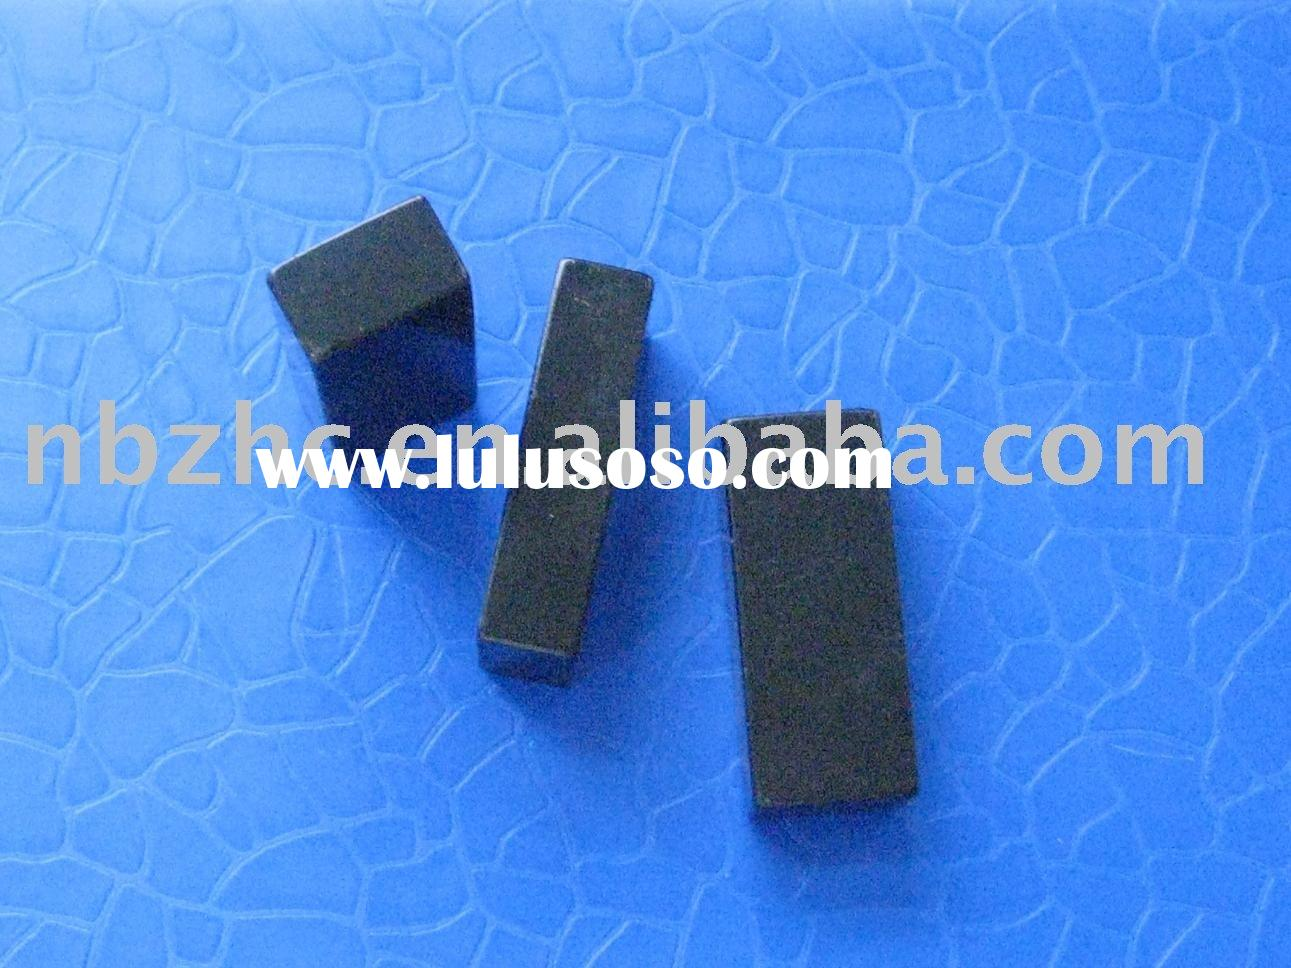 Best quality Sintered rare earth NdFeB magnets